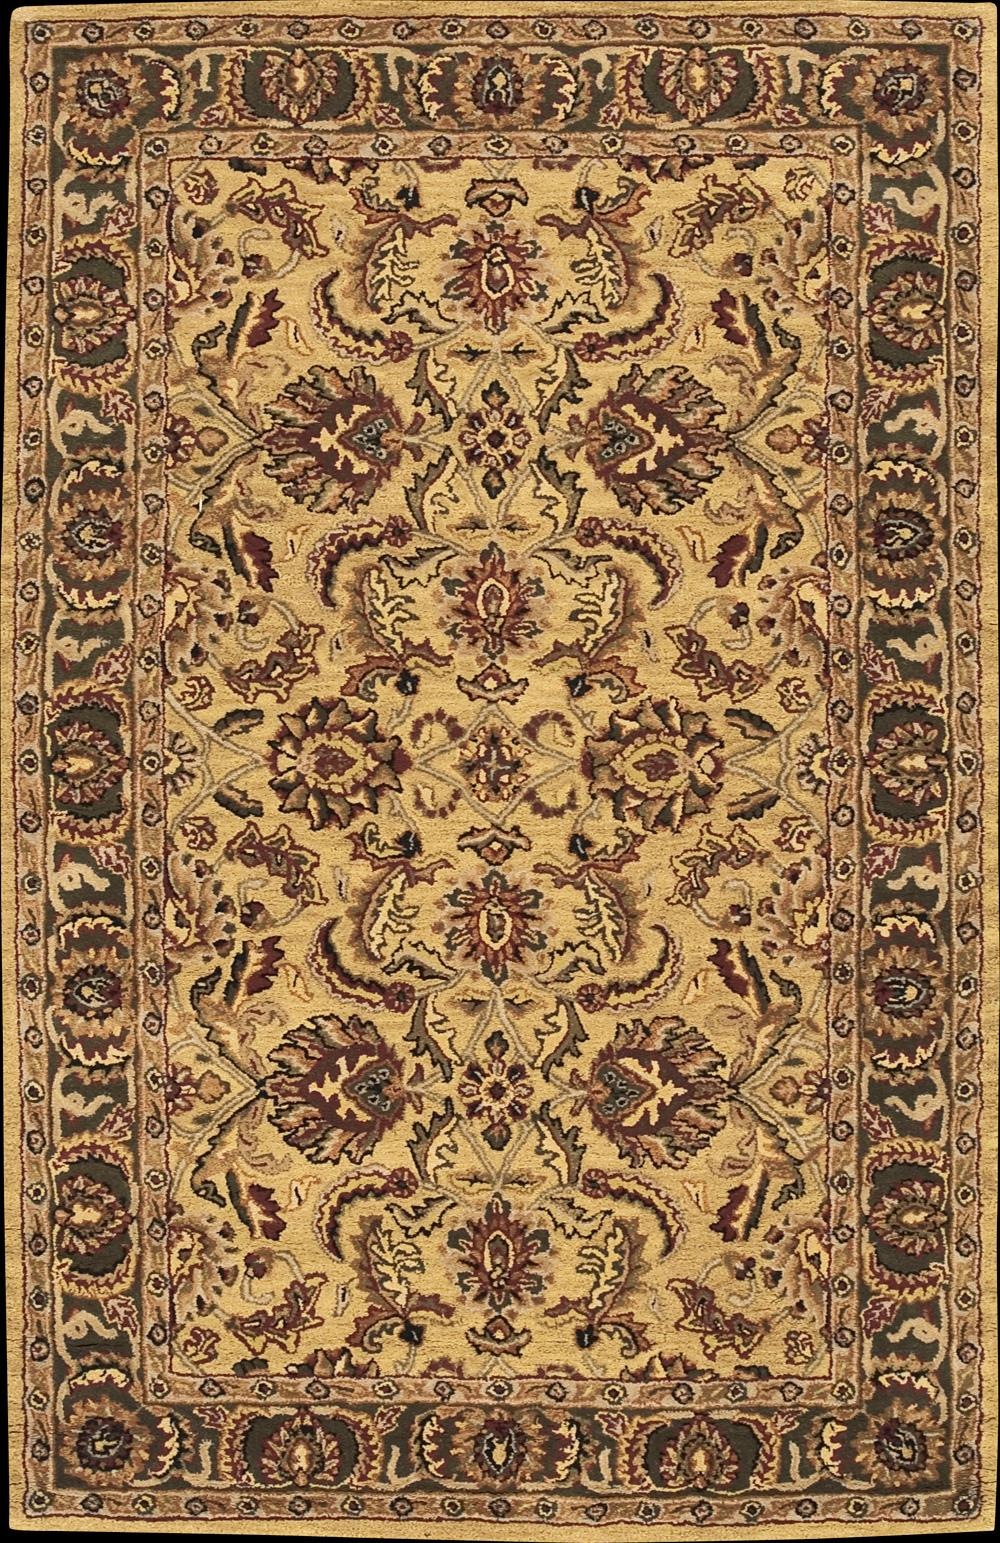 "Nourison India House Area Rug 3'6"" x 5'6"" - Item Number: 21166"